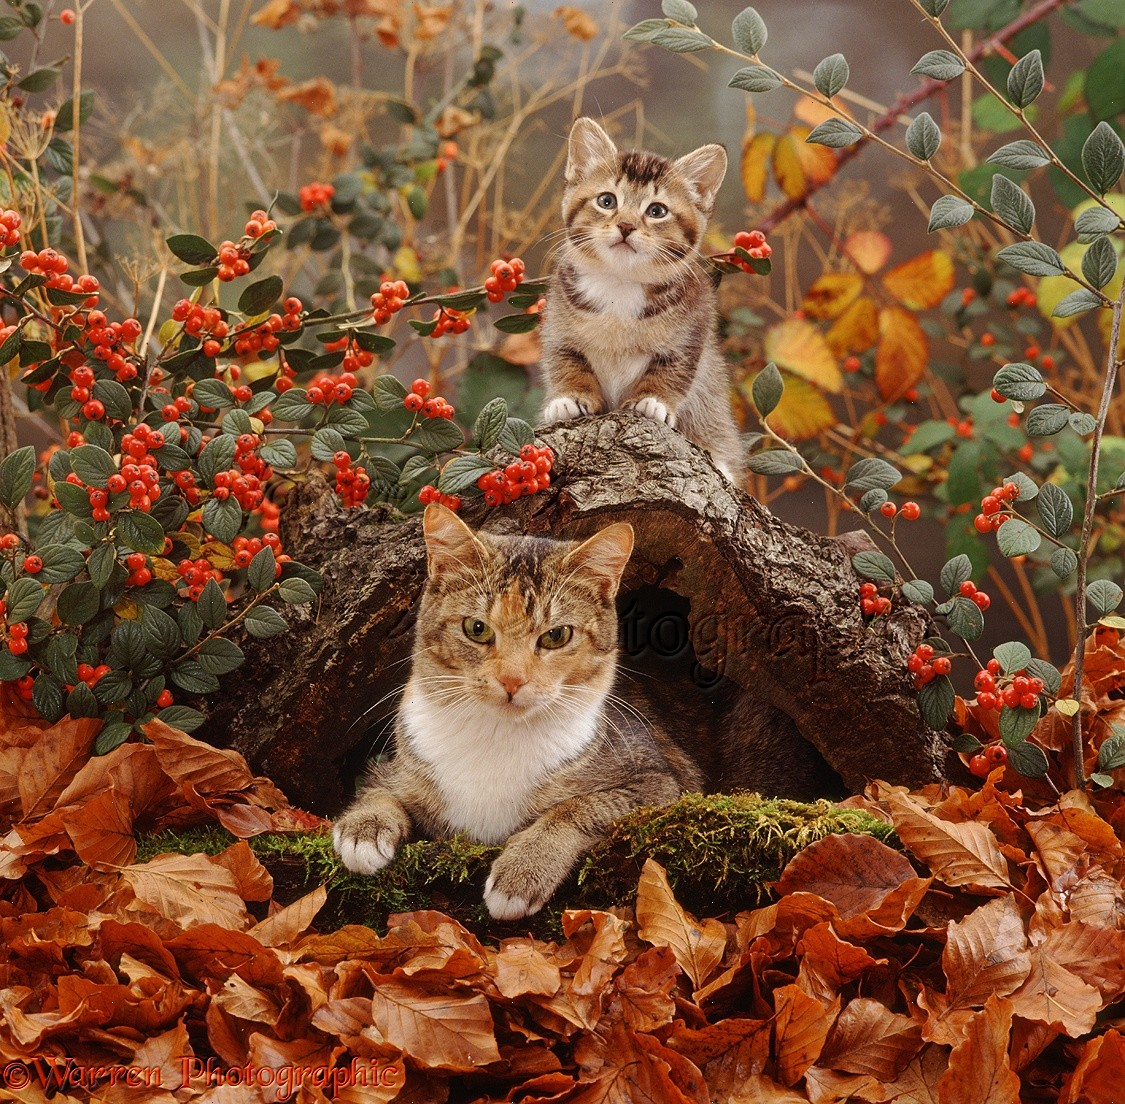 Mother Cat In Hollow Log With Playful Kitten Photo WP32153